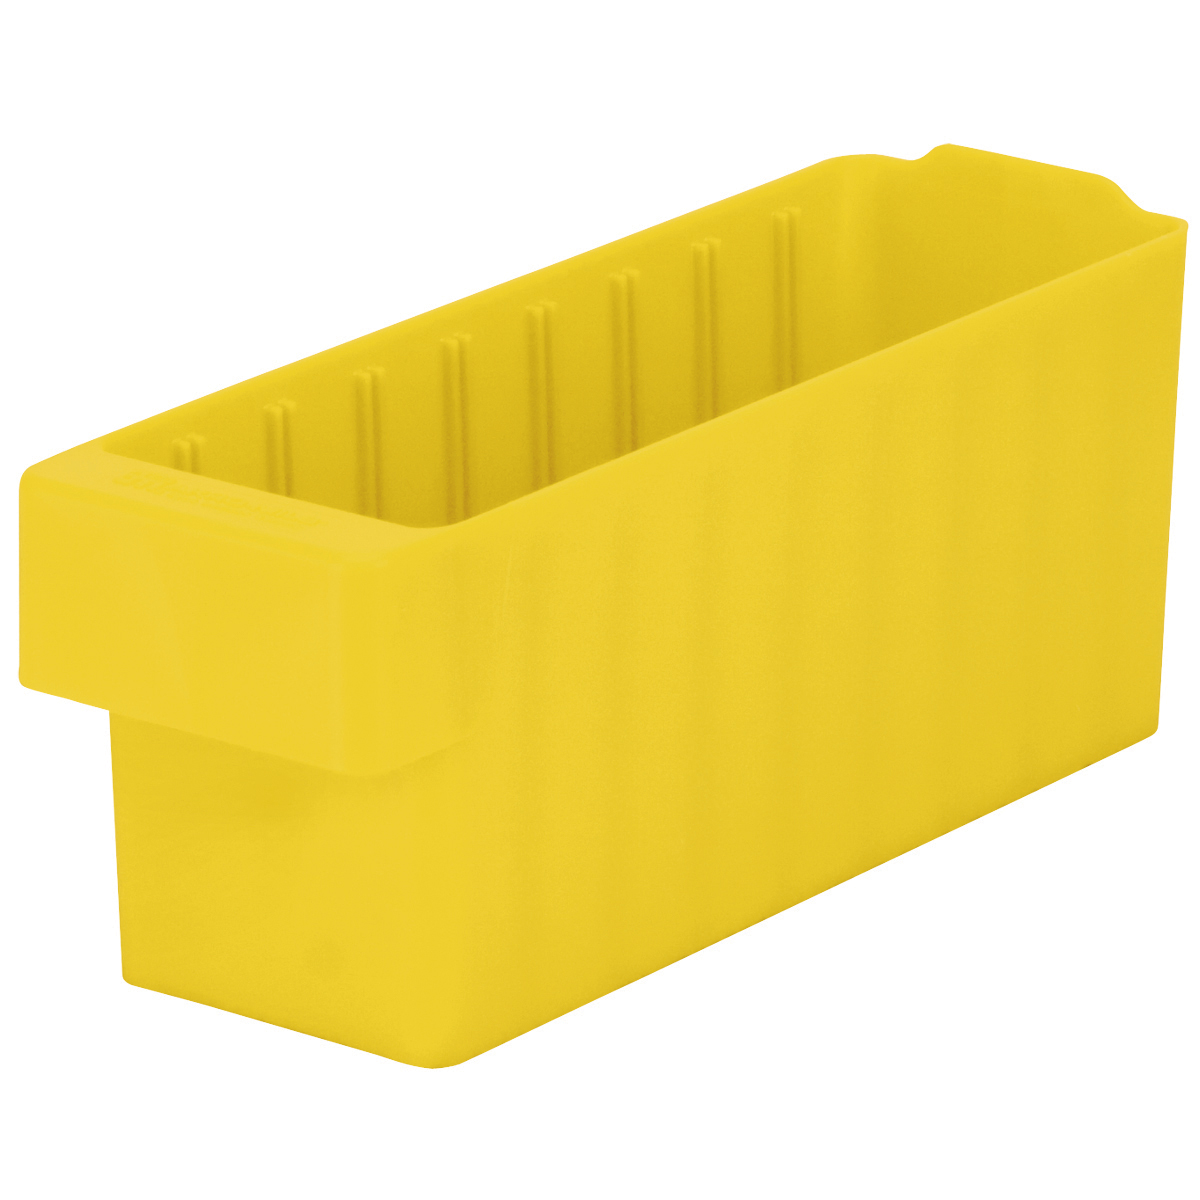 AkroDrawer 11-5/8 x 3-3/4 x 4-5/8, Yellow (31142YEL).  This item sold in carton quantities of 6.